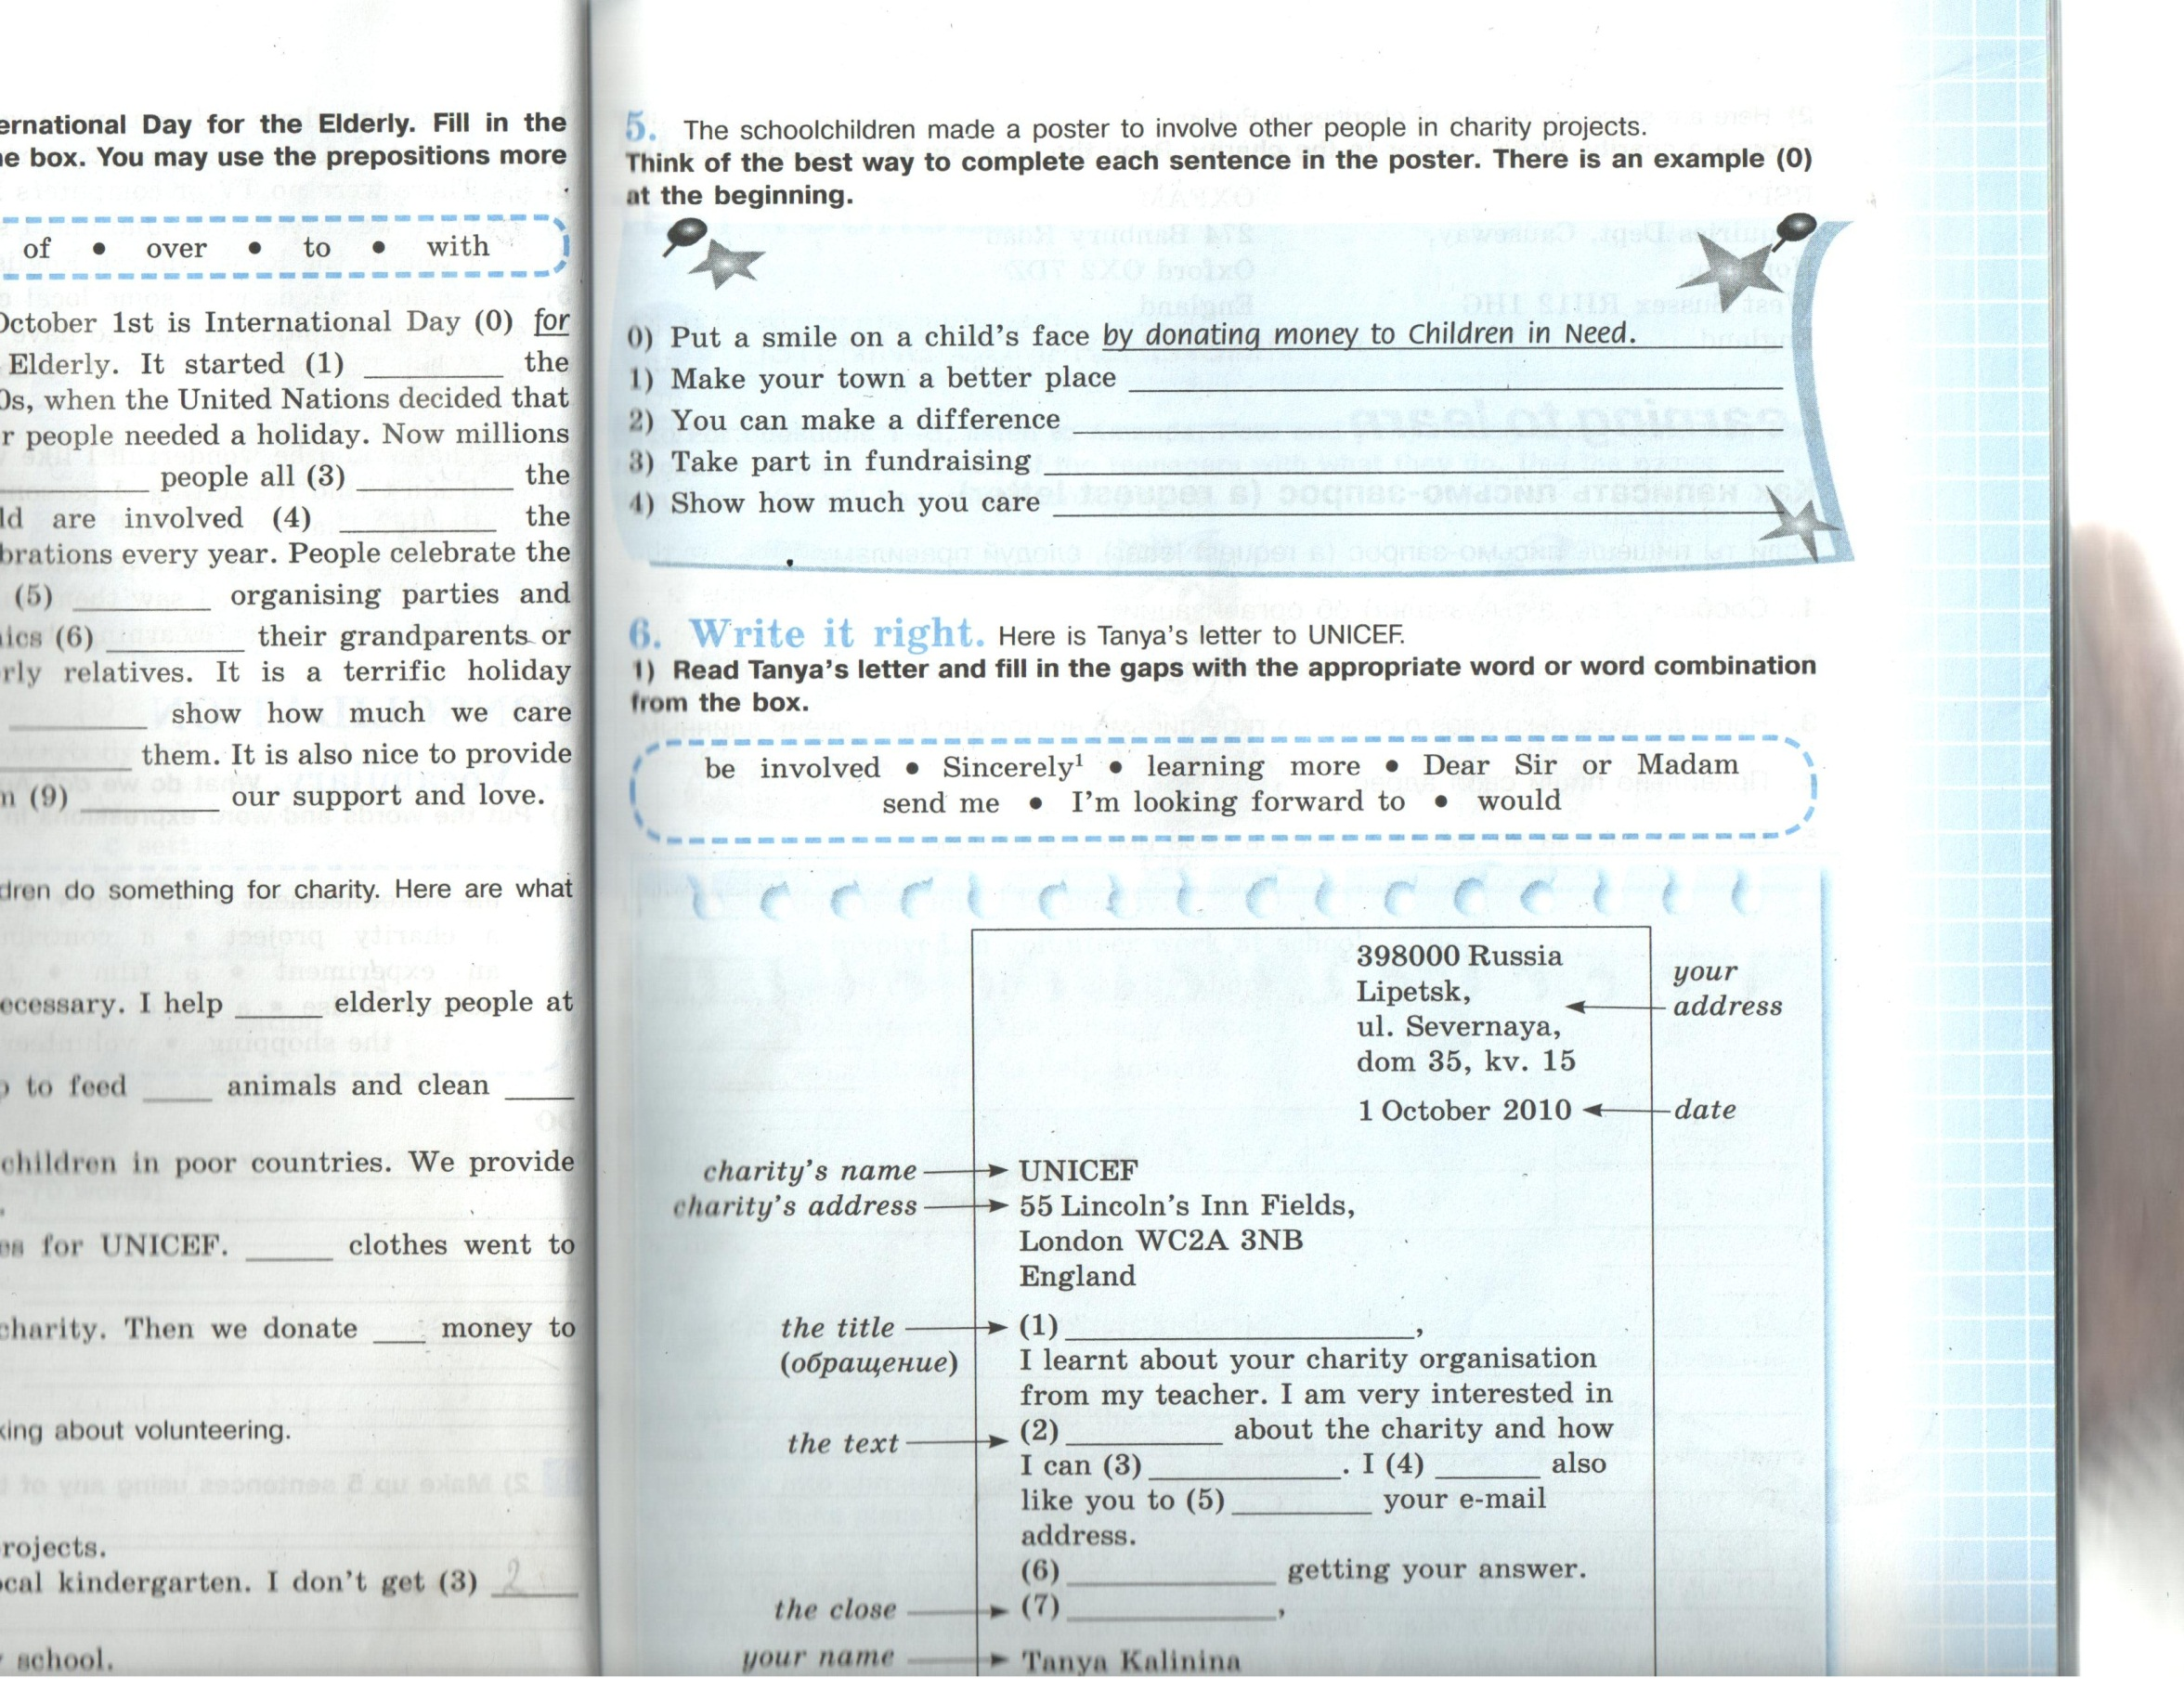 C:\Users\Грузиновская СОШ\Documents\Scanned Documents\Рисунок (1957).jpg